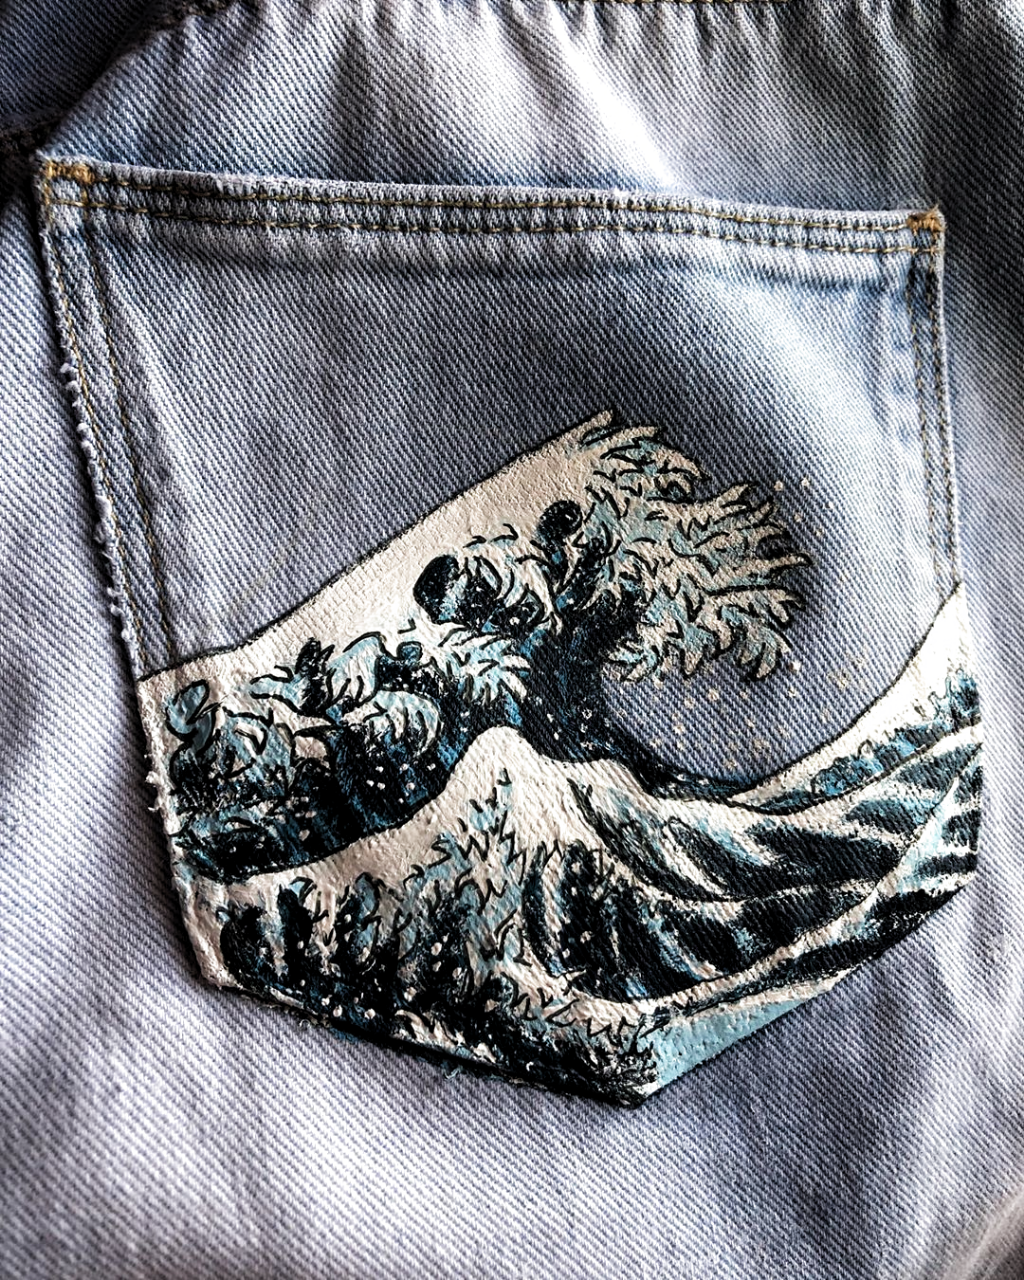 a mediocre version of 𝒯𝒽𝑒 𝒢𝓇𝑒𝒶𝓉 𝒲𝒶𝓋𝑒 𝑜𝒻𝒻 𝒦𝒶𝓃𝒶𝑔𝒶𝓌𝒶 that i painted on my back pocket for 3hrs :) . #painting #waves #blue #pants…